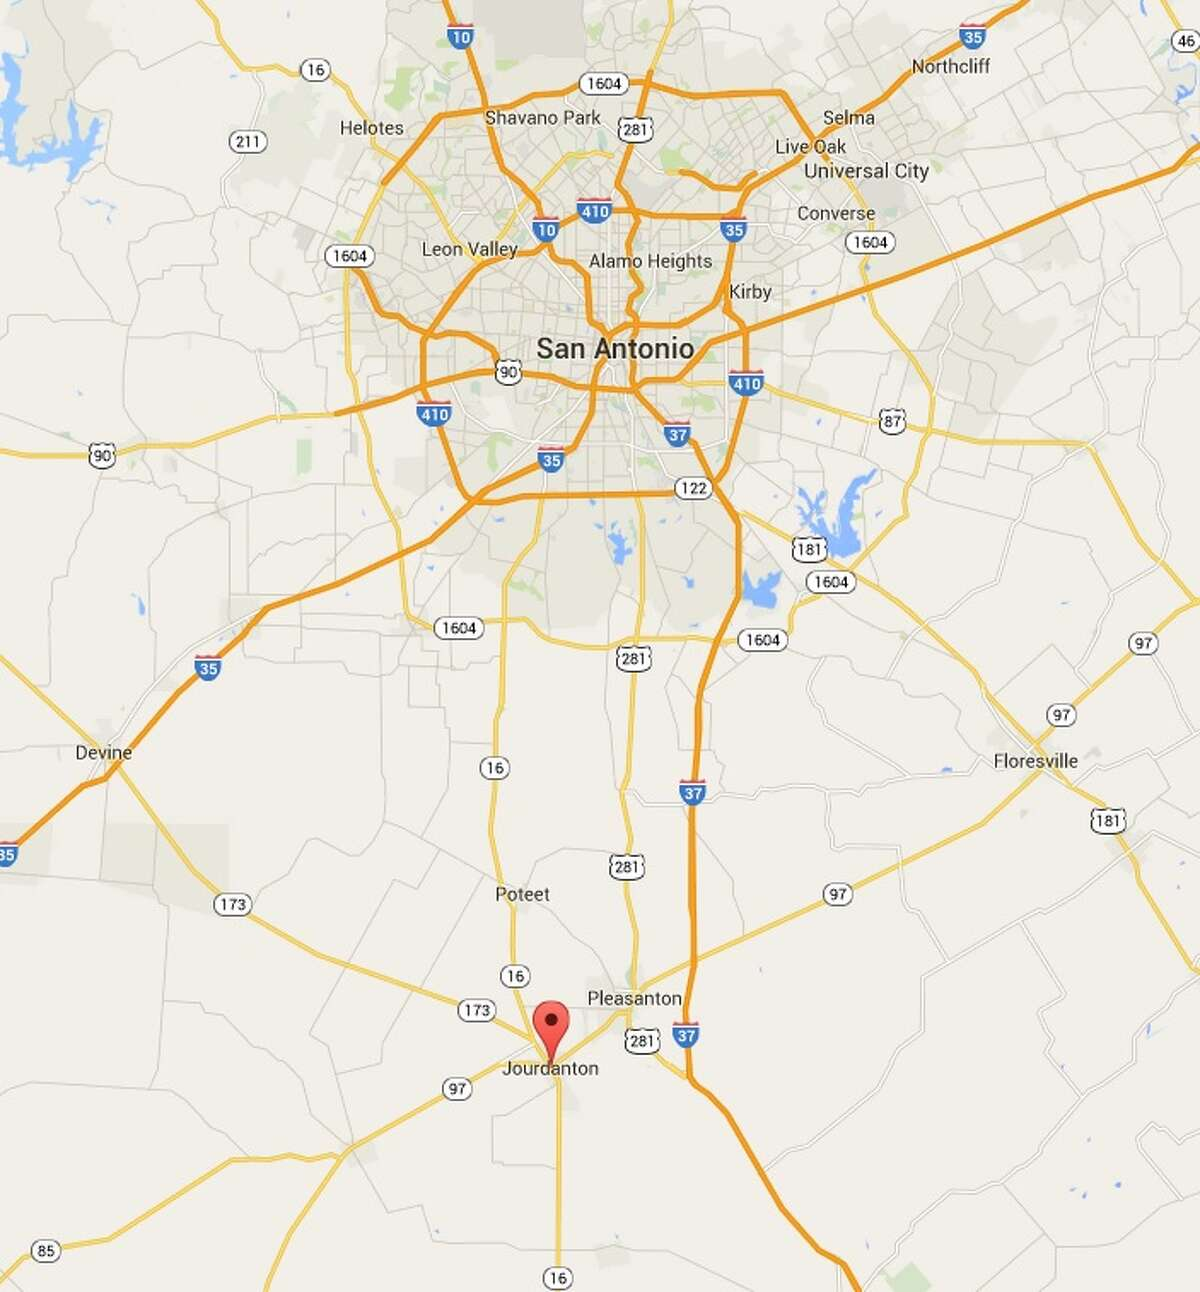 A 3.1 magnitude earthquake was reported at 5:30 a.m. June 1, 2018 near Jourdanton, which is south of San Antonio.